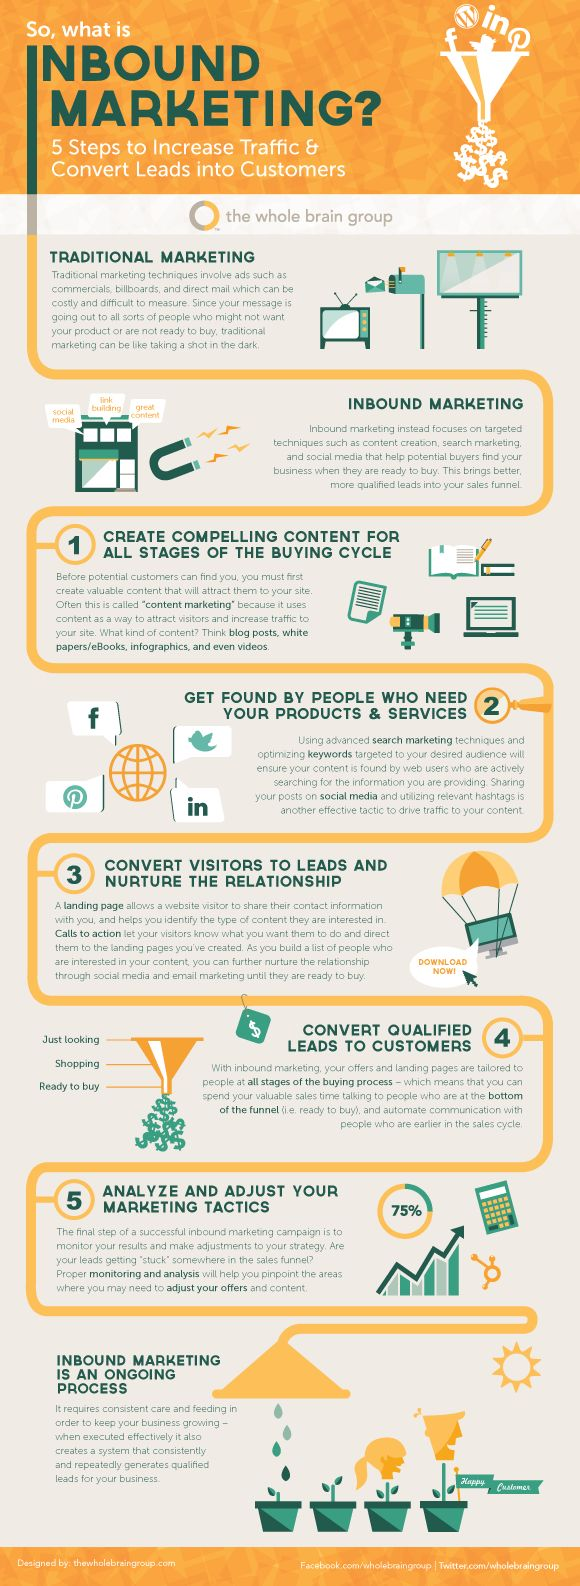 So what is Inbound Marketing? Increase traffic, convert visitors to customers - http://blog.hubspot.com/blog/tabid/6307/bid/33787/a-super-simple-explanation-of-inbound-marketing-infographic?source=Blog_Email_[A%20Super%20Simple%20Expla]